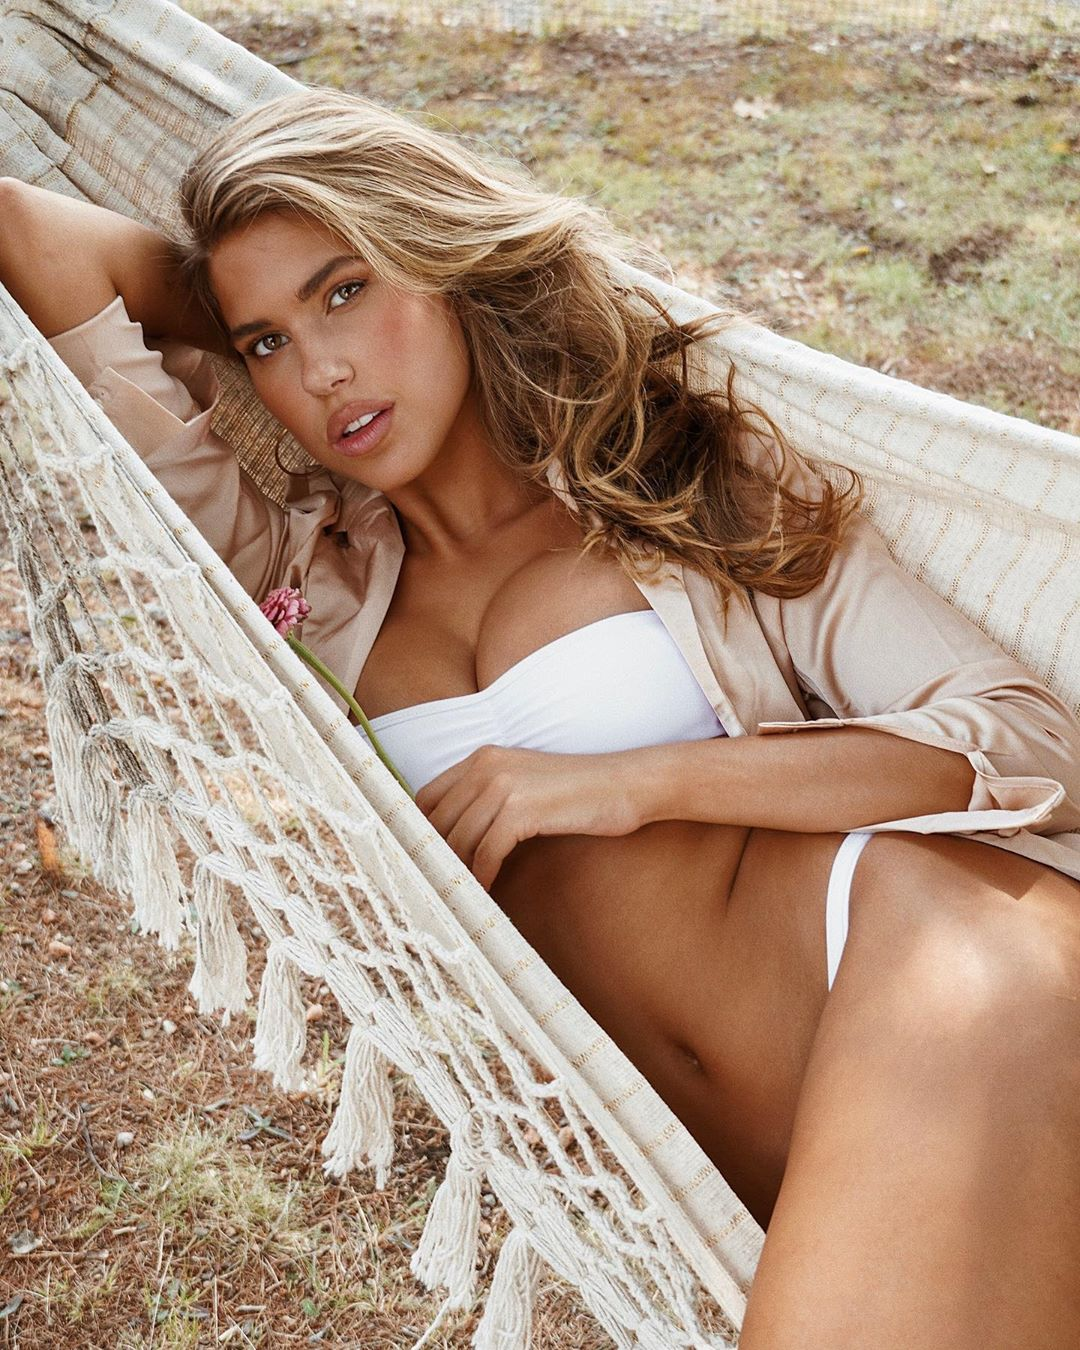 Hot Blonde Kara Del Toro Pose - Hot Blonde Kara Del Toro Pose